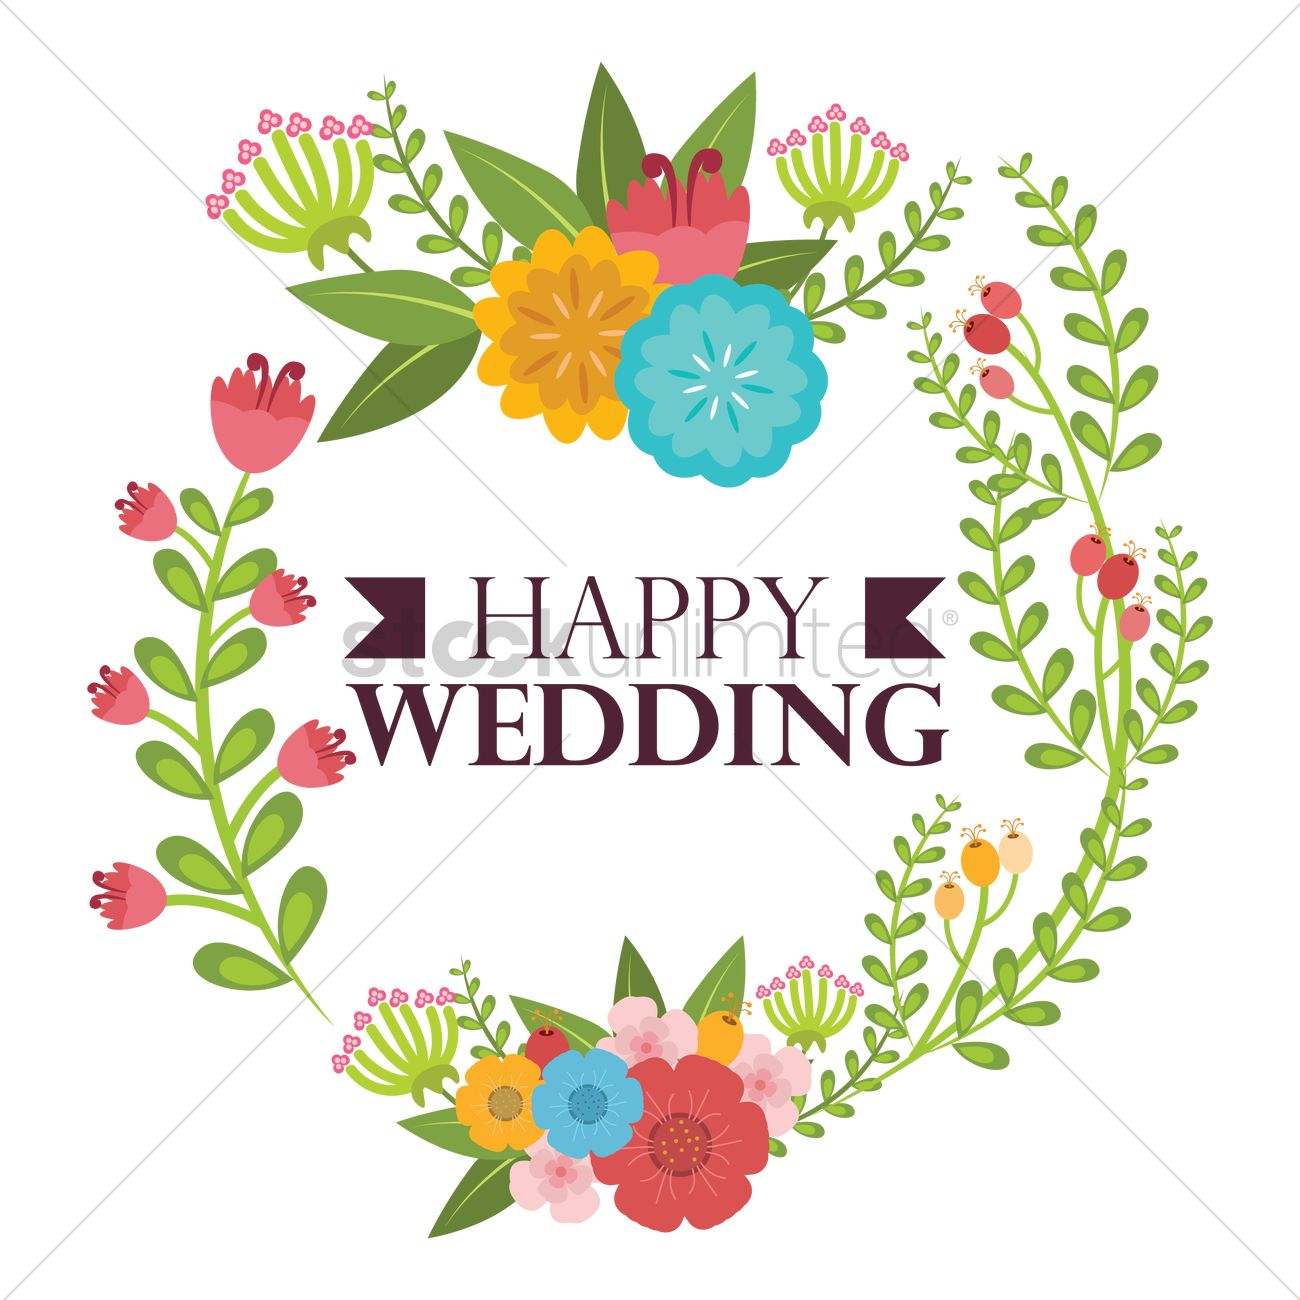 Wedding vector graphics awesome graphic library happy wedding vector image 1797282 stockunlimited rh stockunlimited com wedding invitation vector graphics wedding invitation vector graphics free download stopboris Images